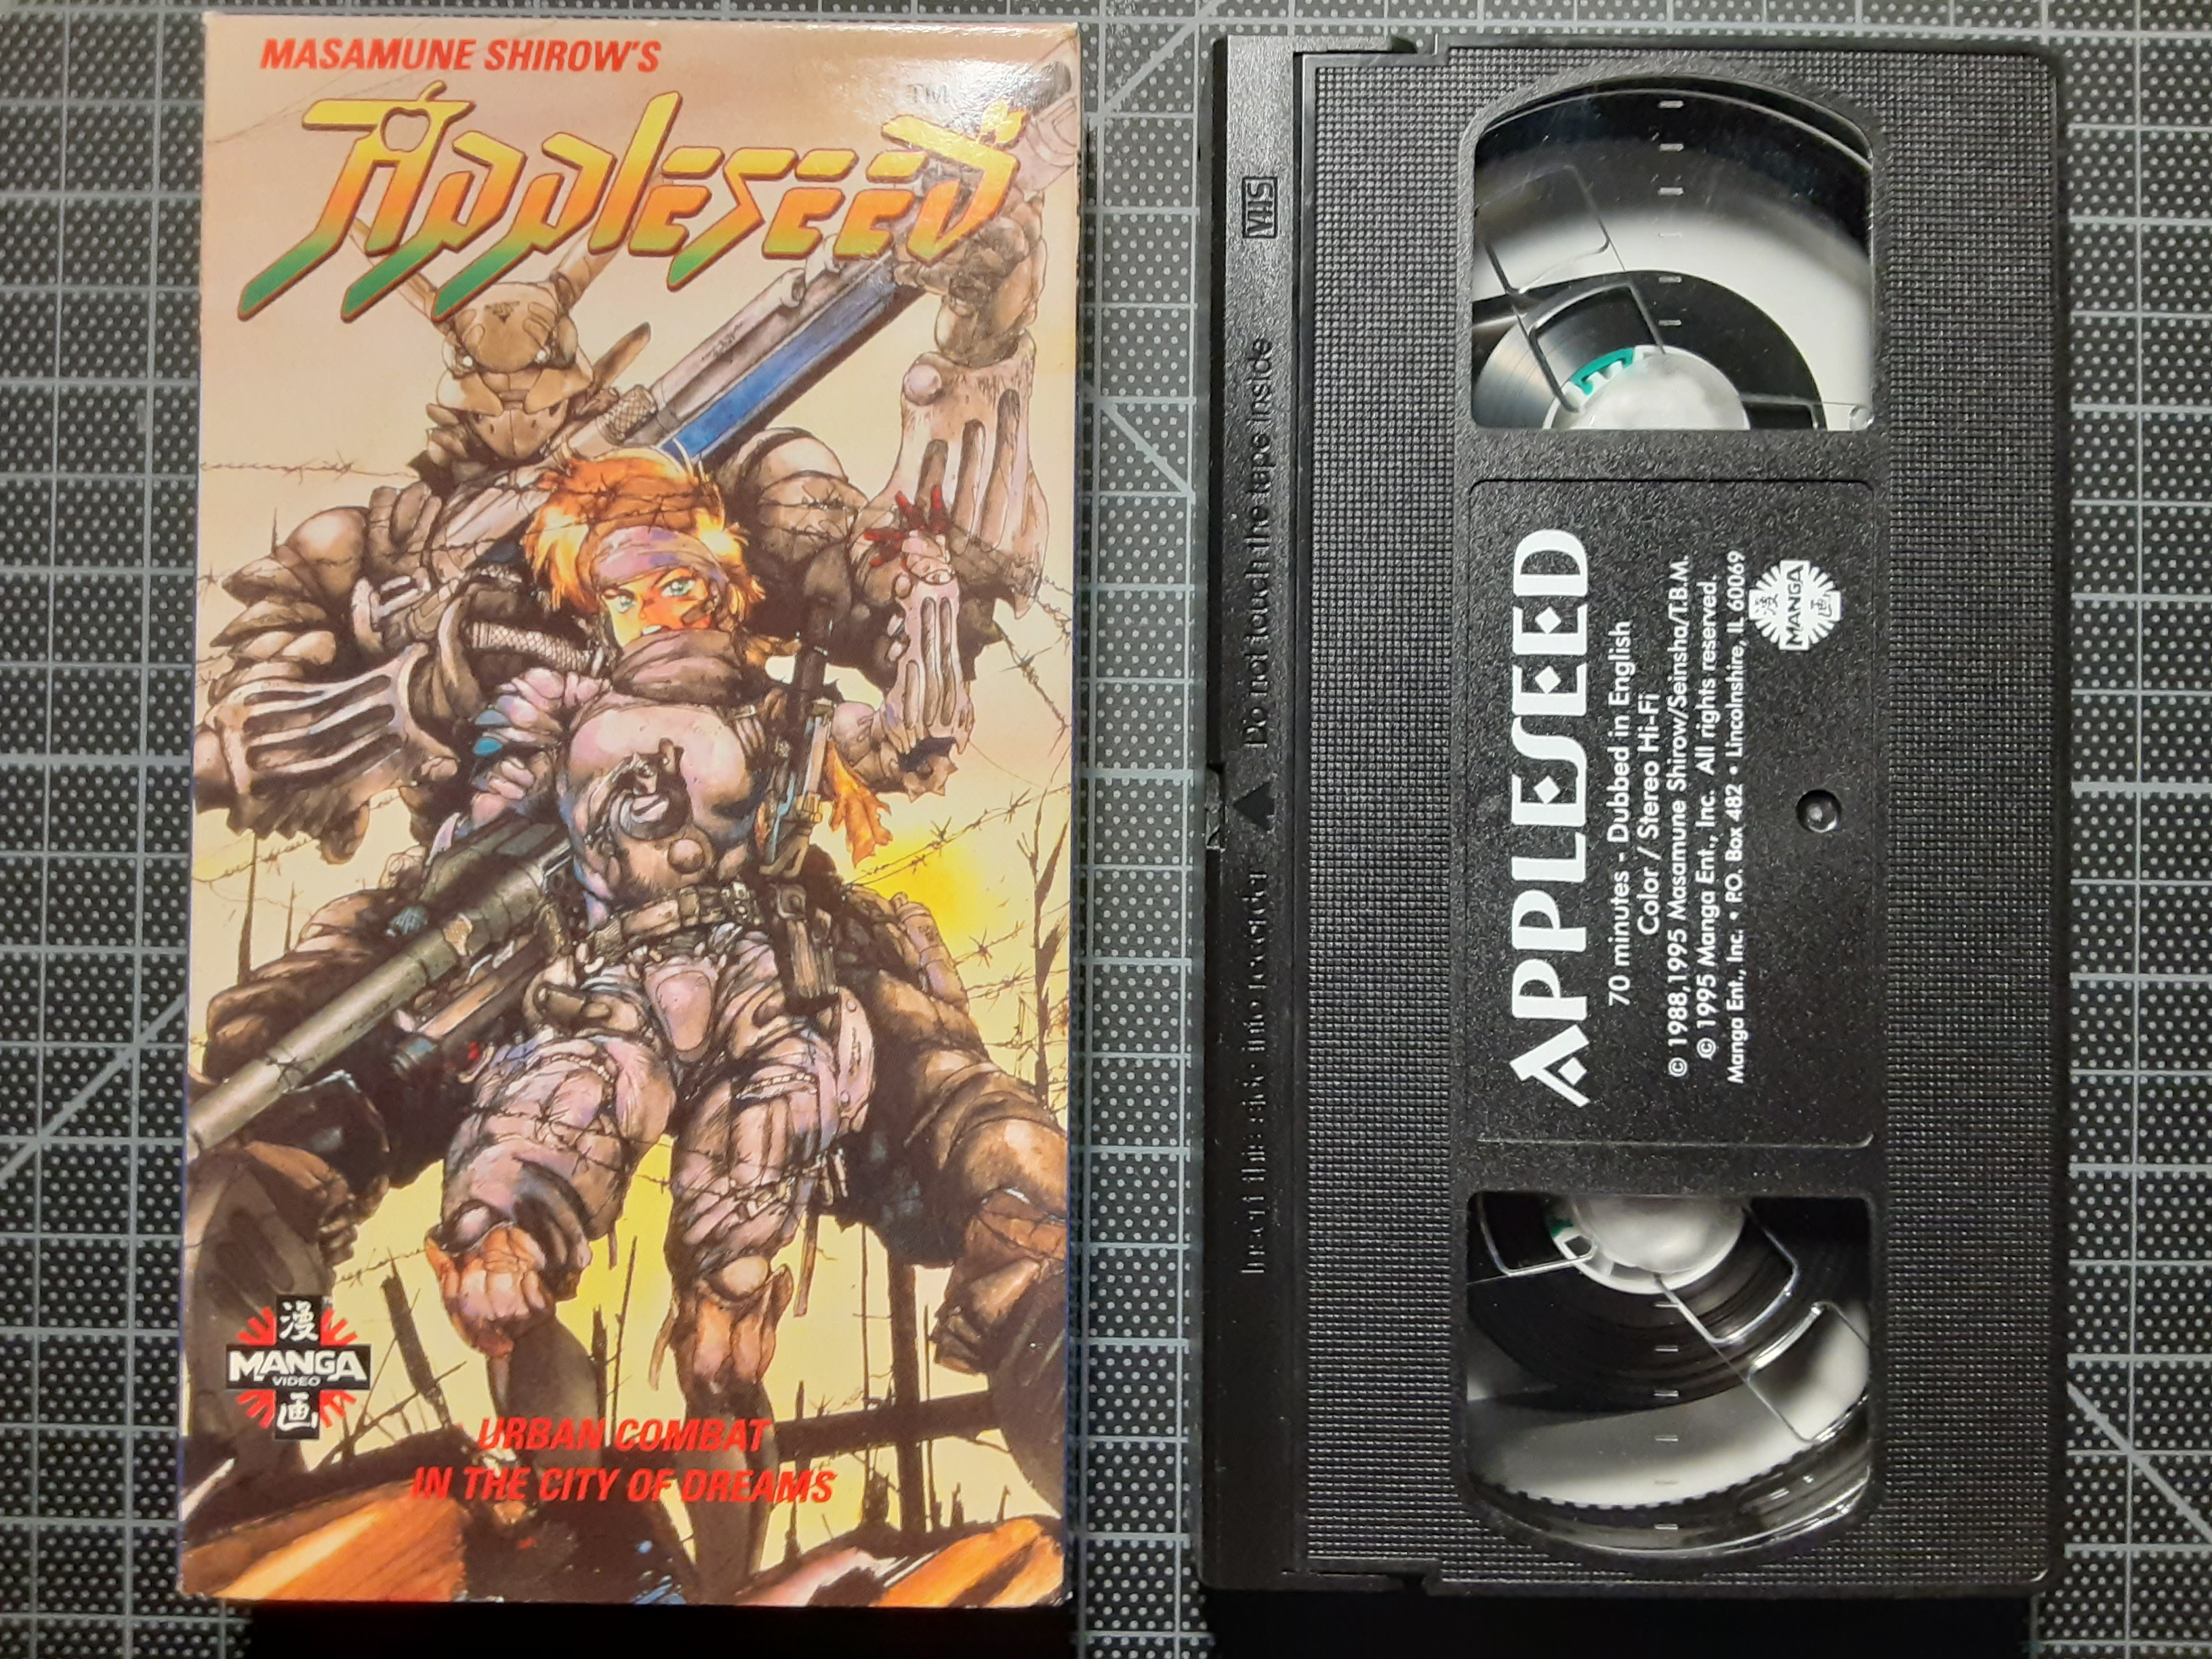 Appleseed Manga Video Vhs English Dubbed Version Sold By Dragon S Crypt On Storenvy